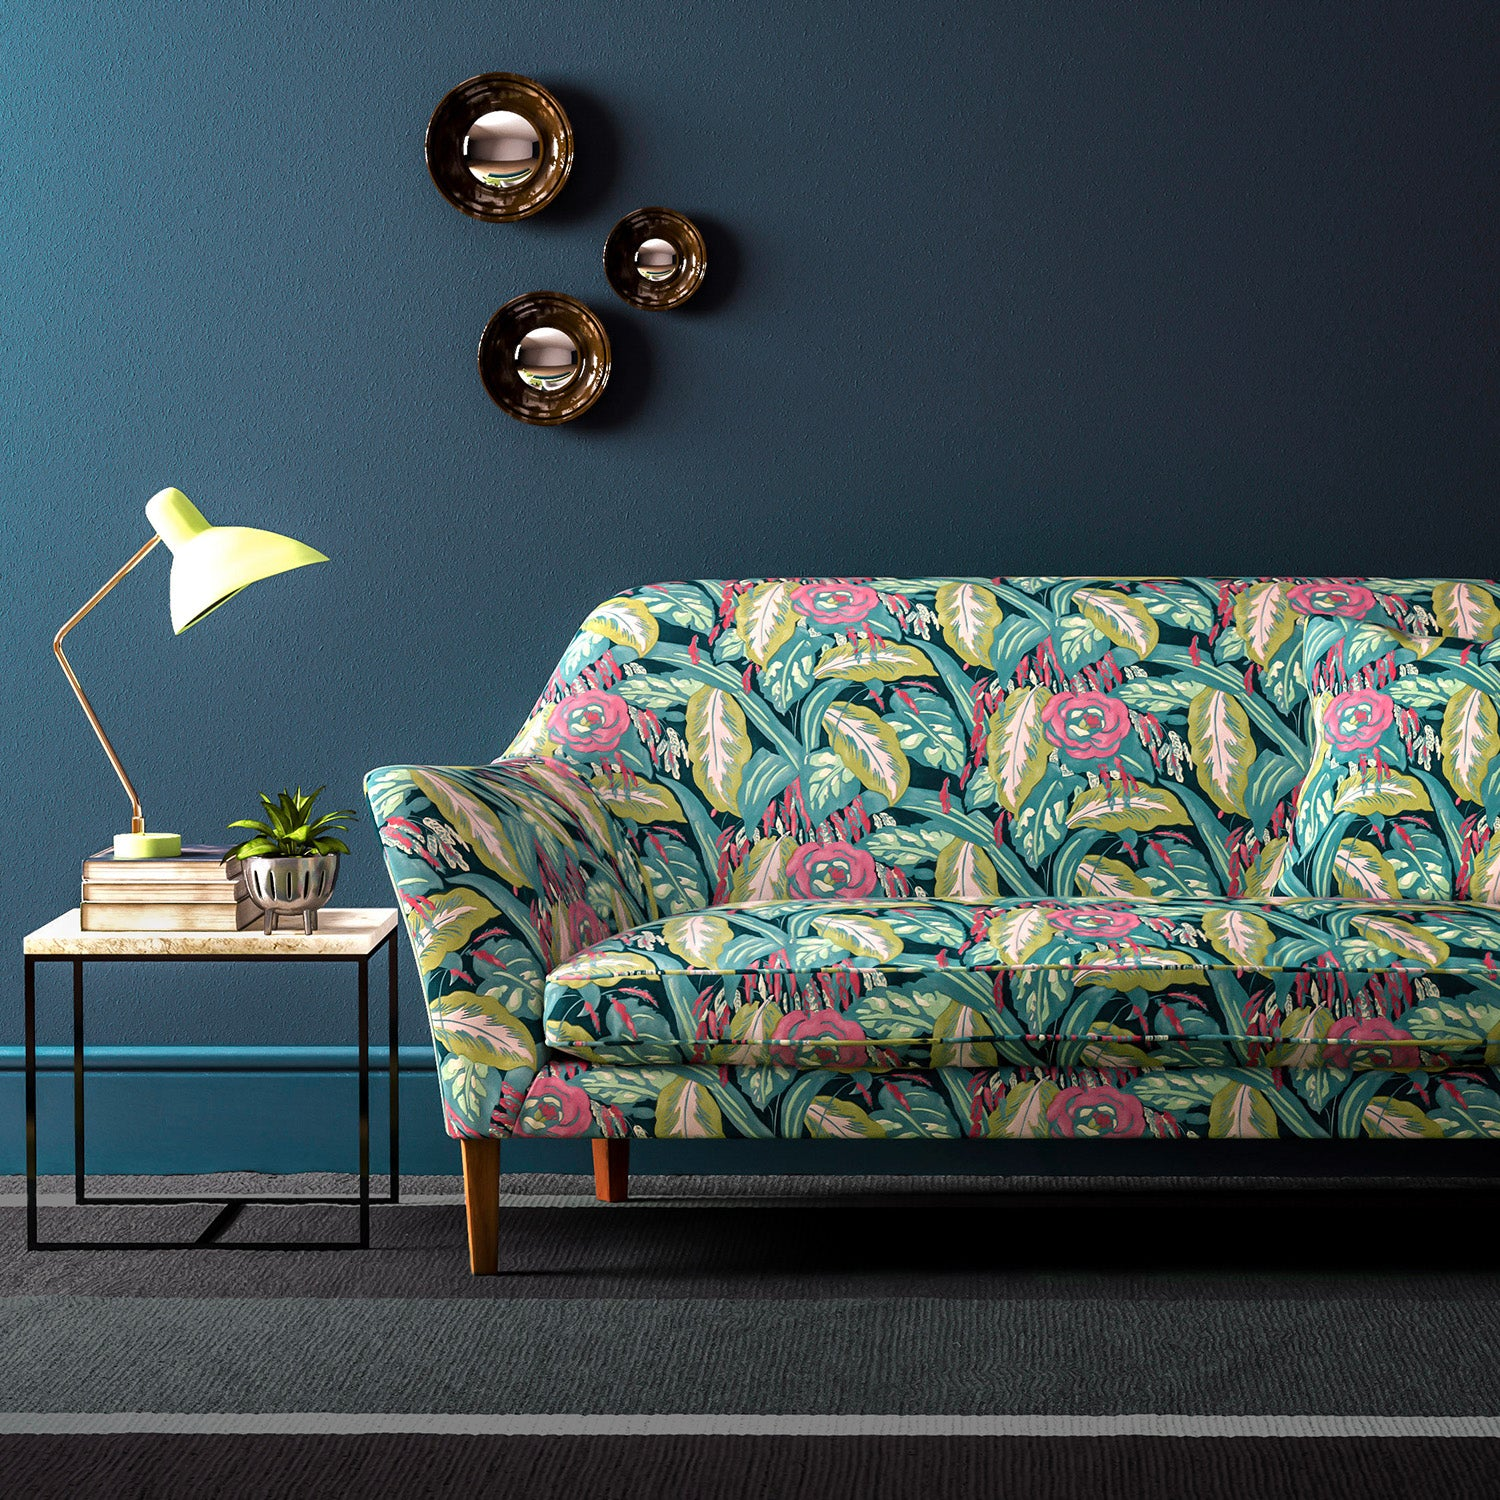 Velvet sofa upholstered in a pink and teal floral velvet upholstery fabric with a stain resistant finish